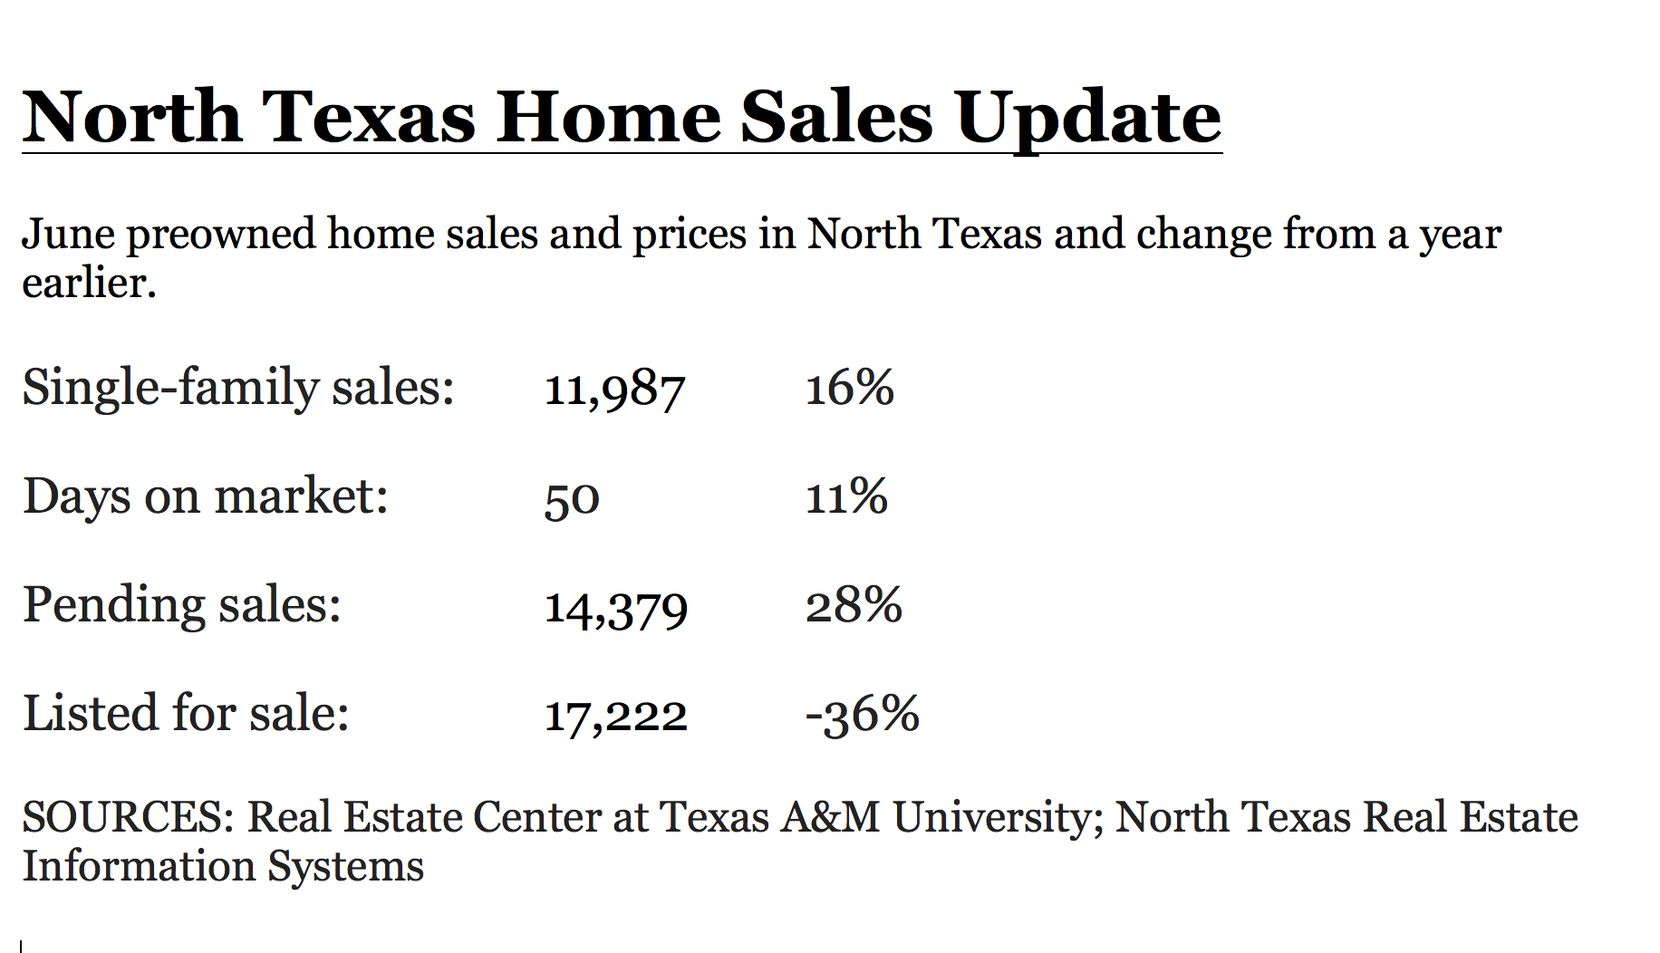 Pending home sales in North Texas are also higher.